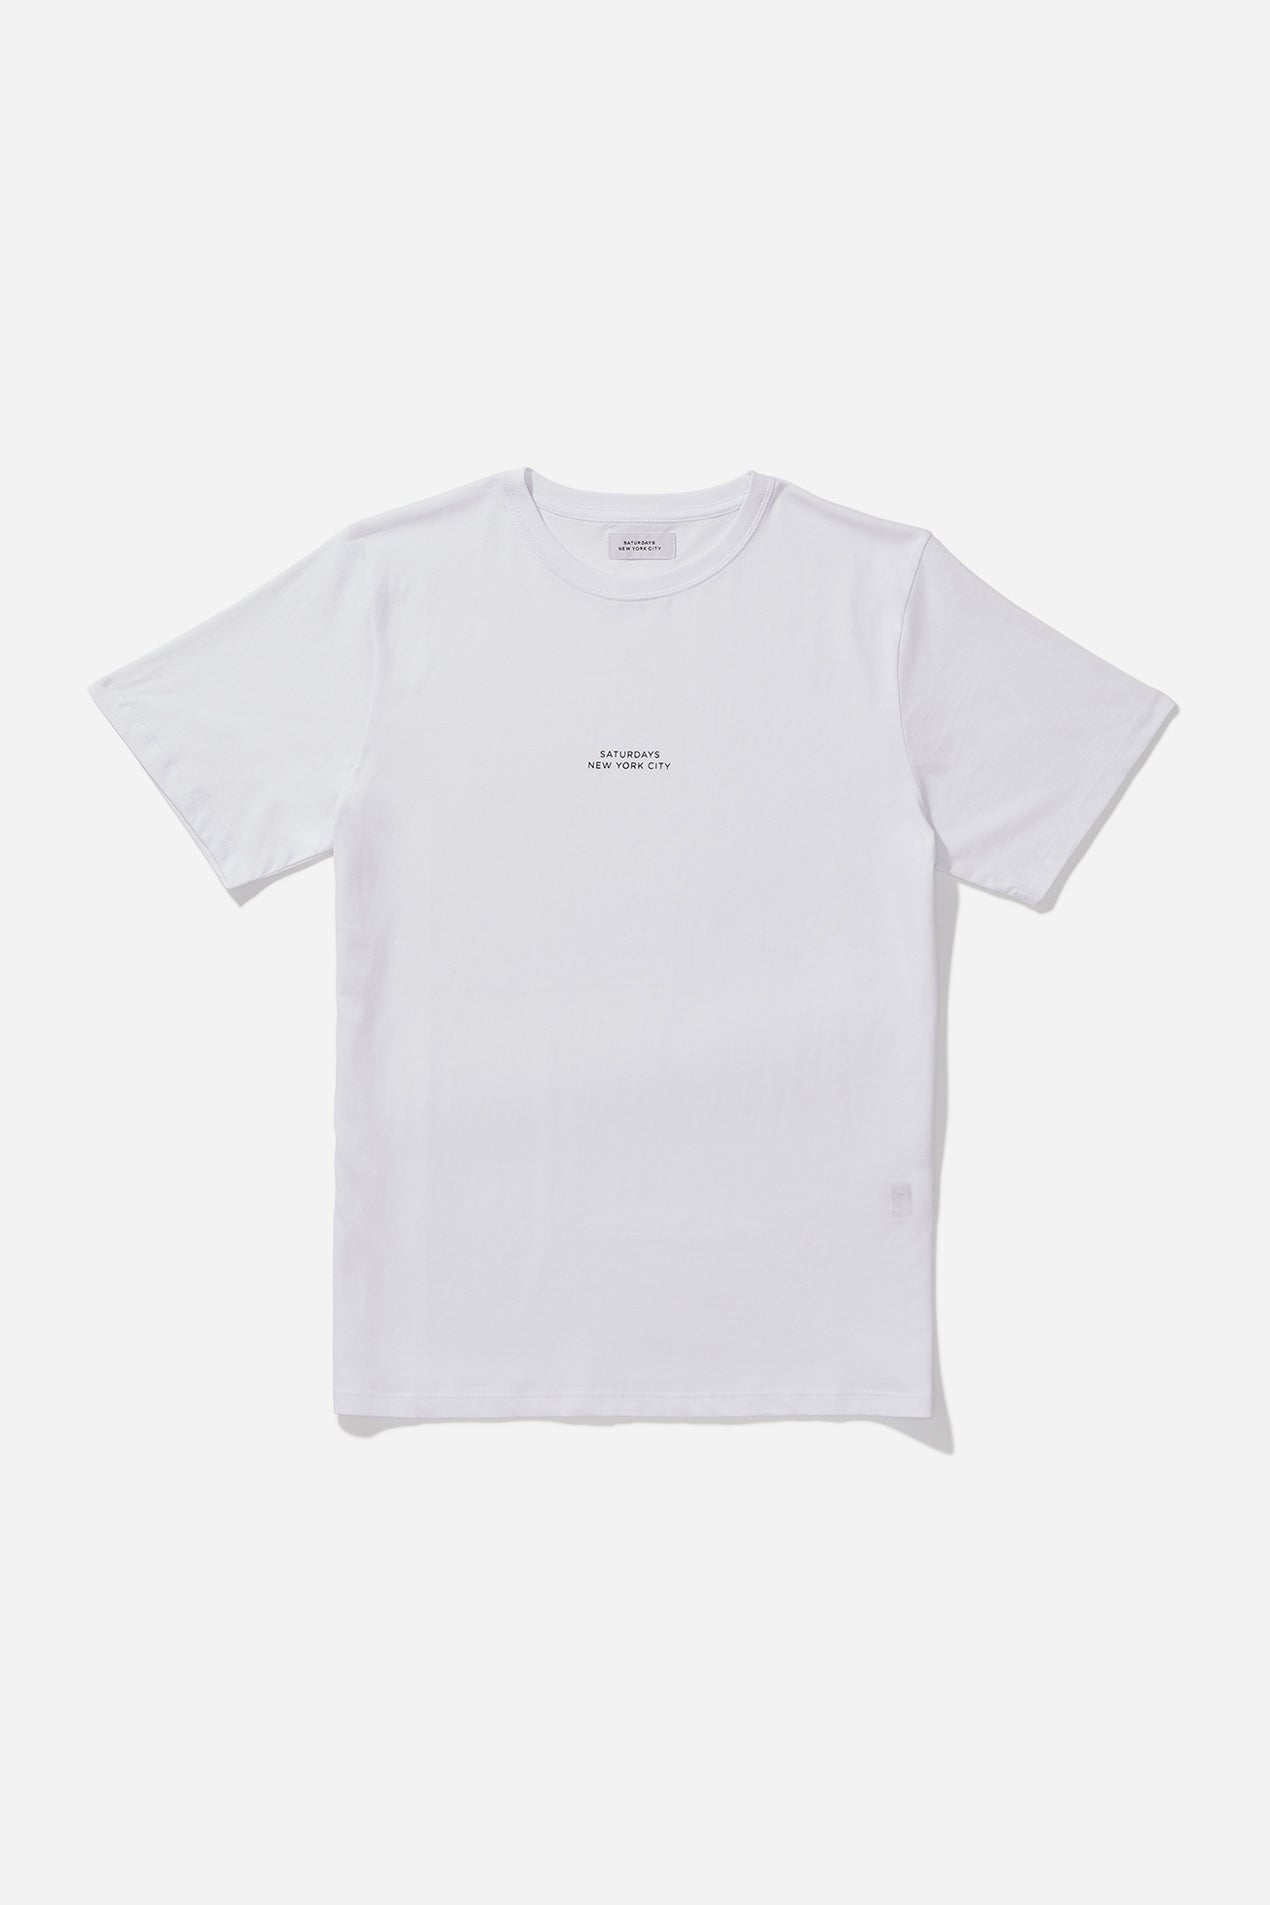 Gotham Chest Shadow S/S Tee